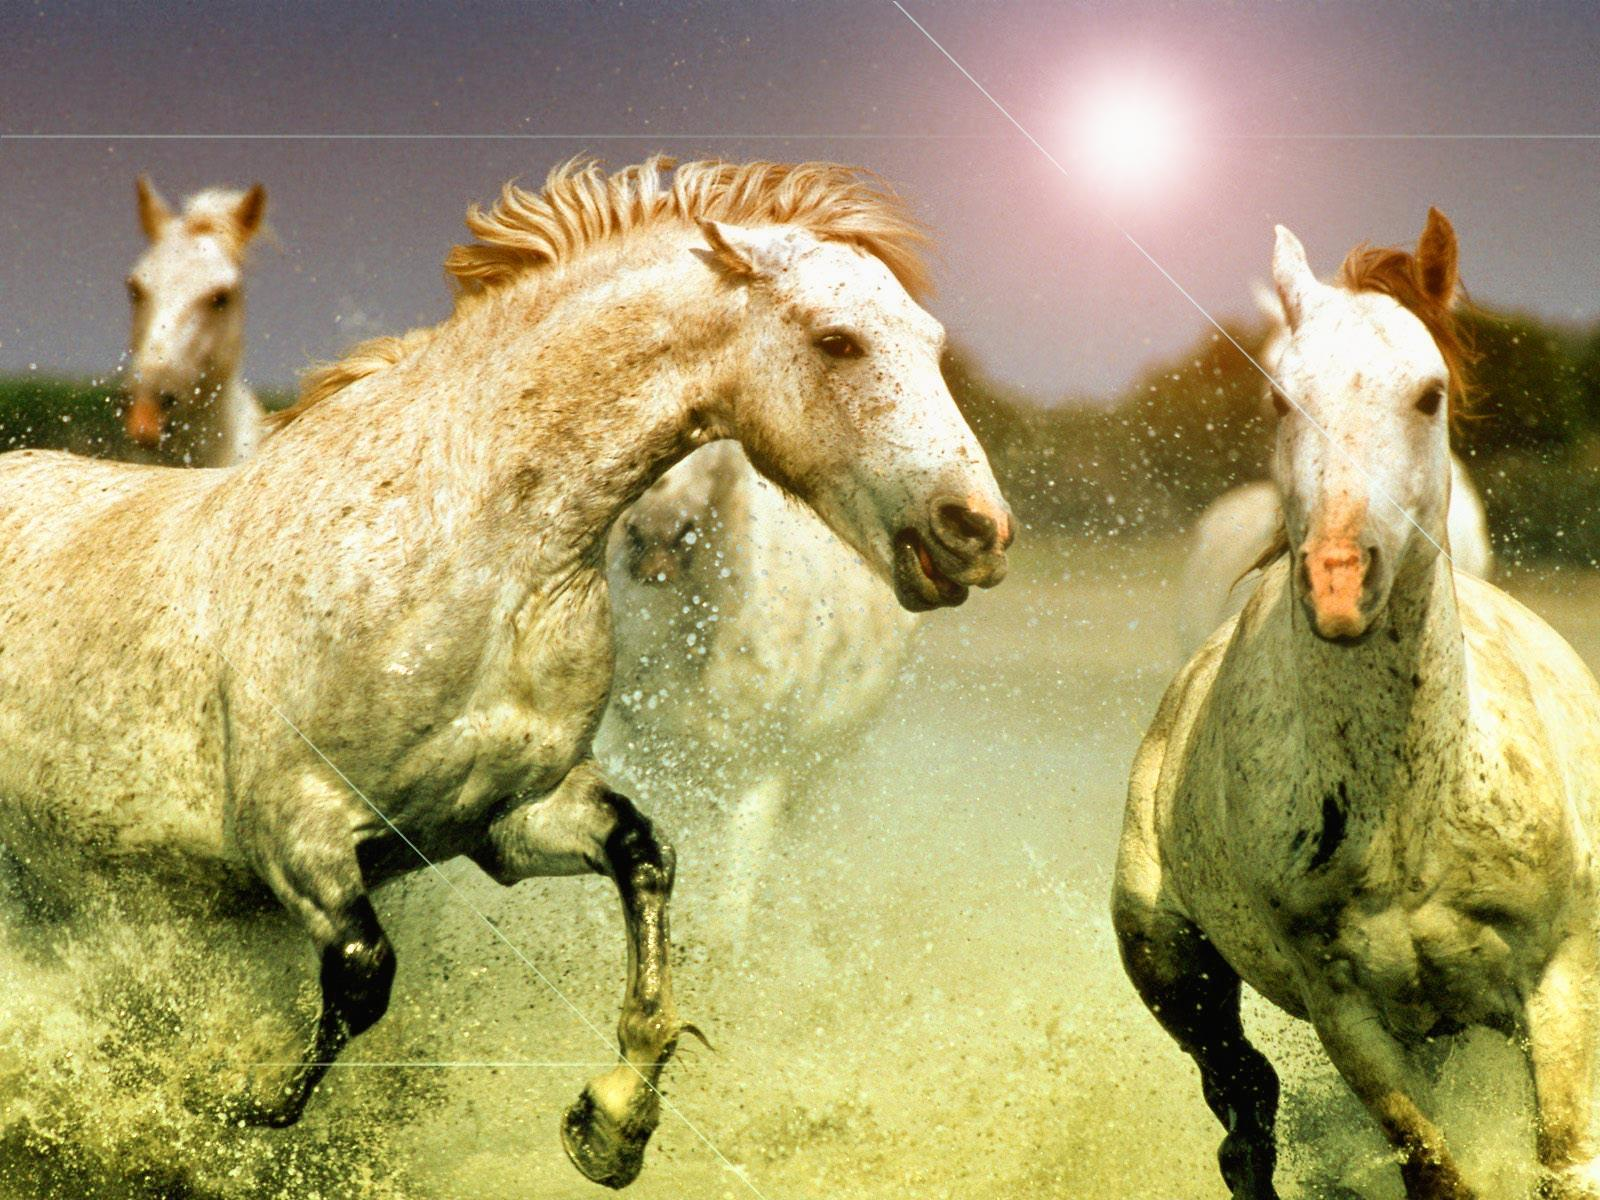 horse wallpapers for laptop - photo #29